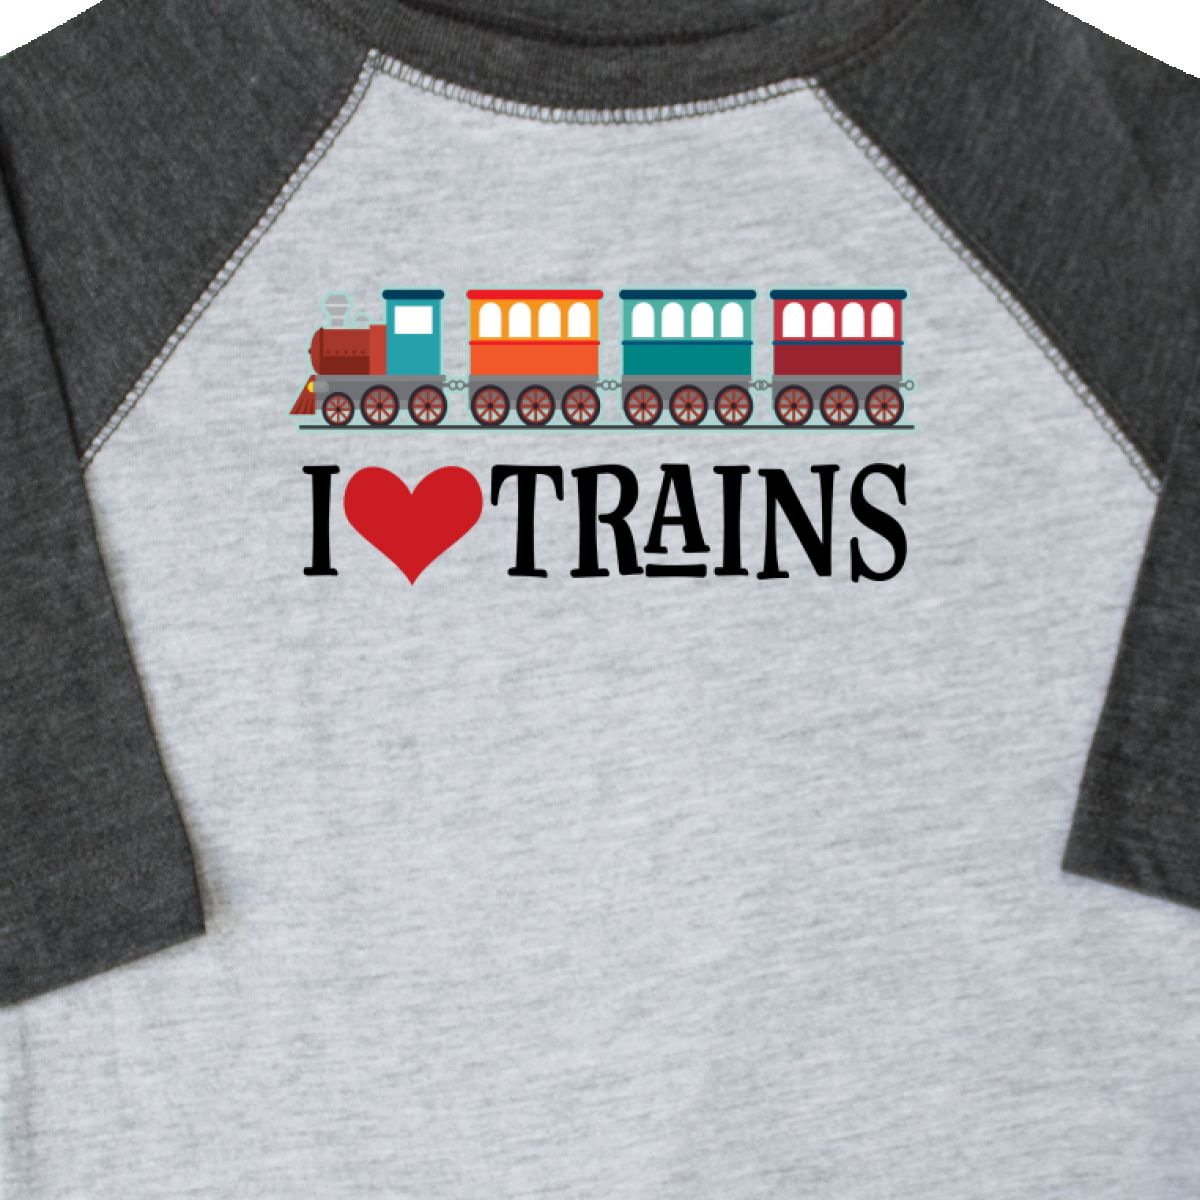 Inktastic-I-Love-Trains-Toddler-T-Shirt-Choo-Childs-Clothing-Apparel-Railfan-Set thumbnail 4